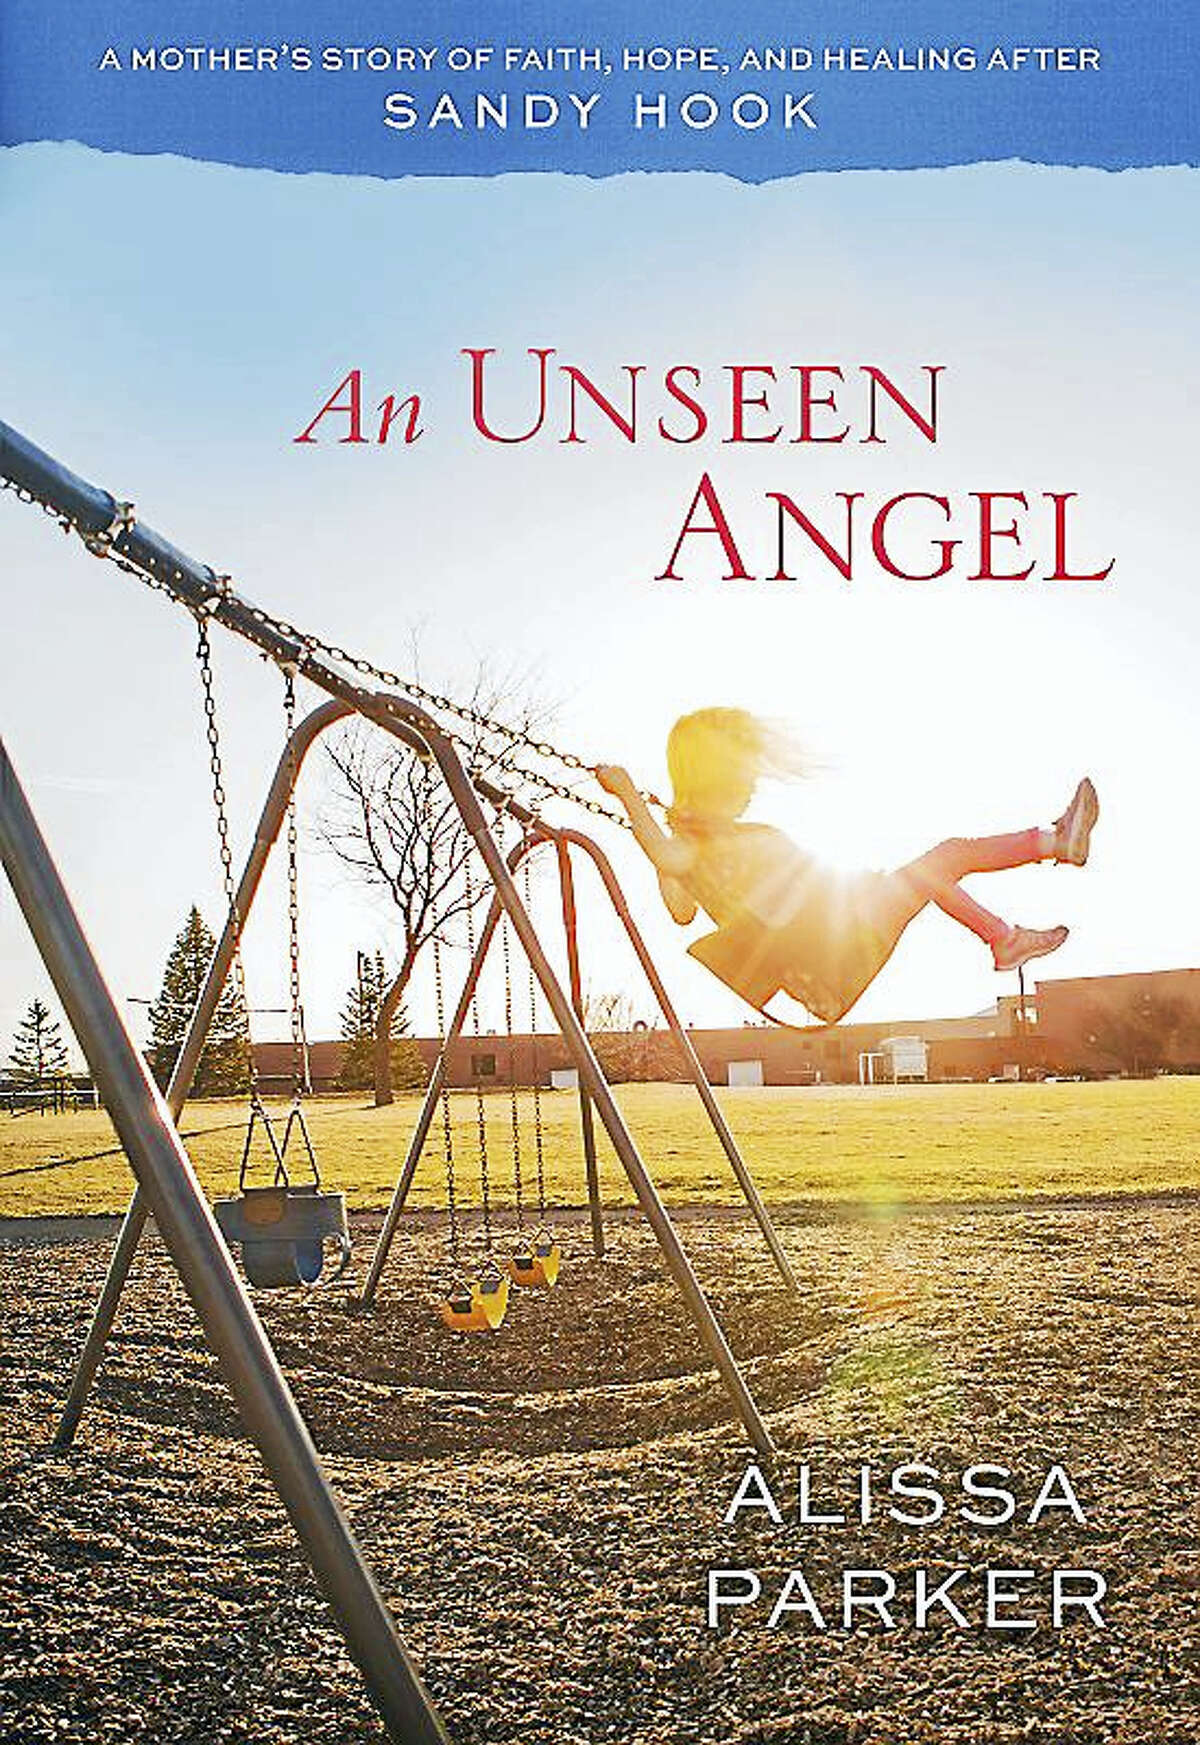 """The cover of the book, """"An Unseen Angel,"""" written by Alissa Parker."""